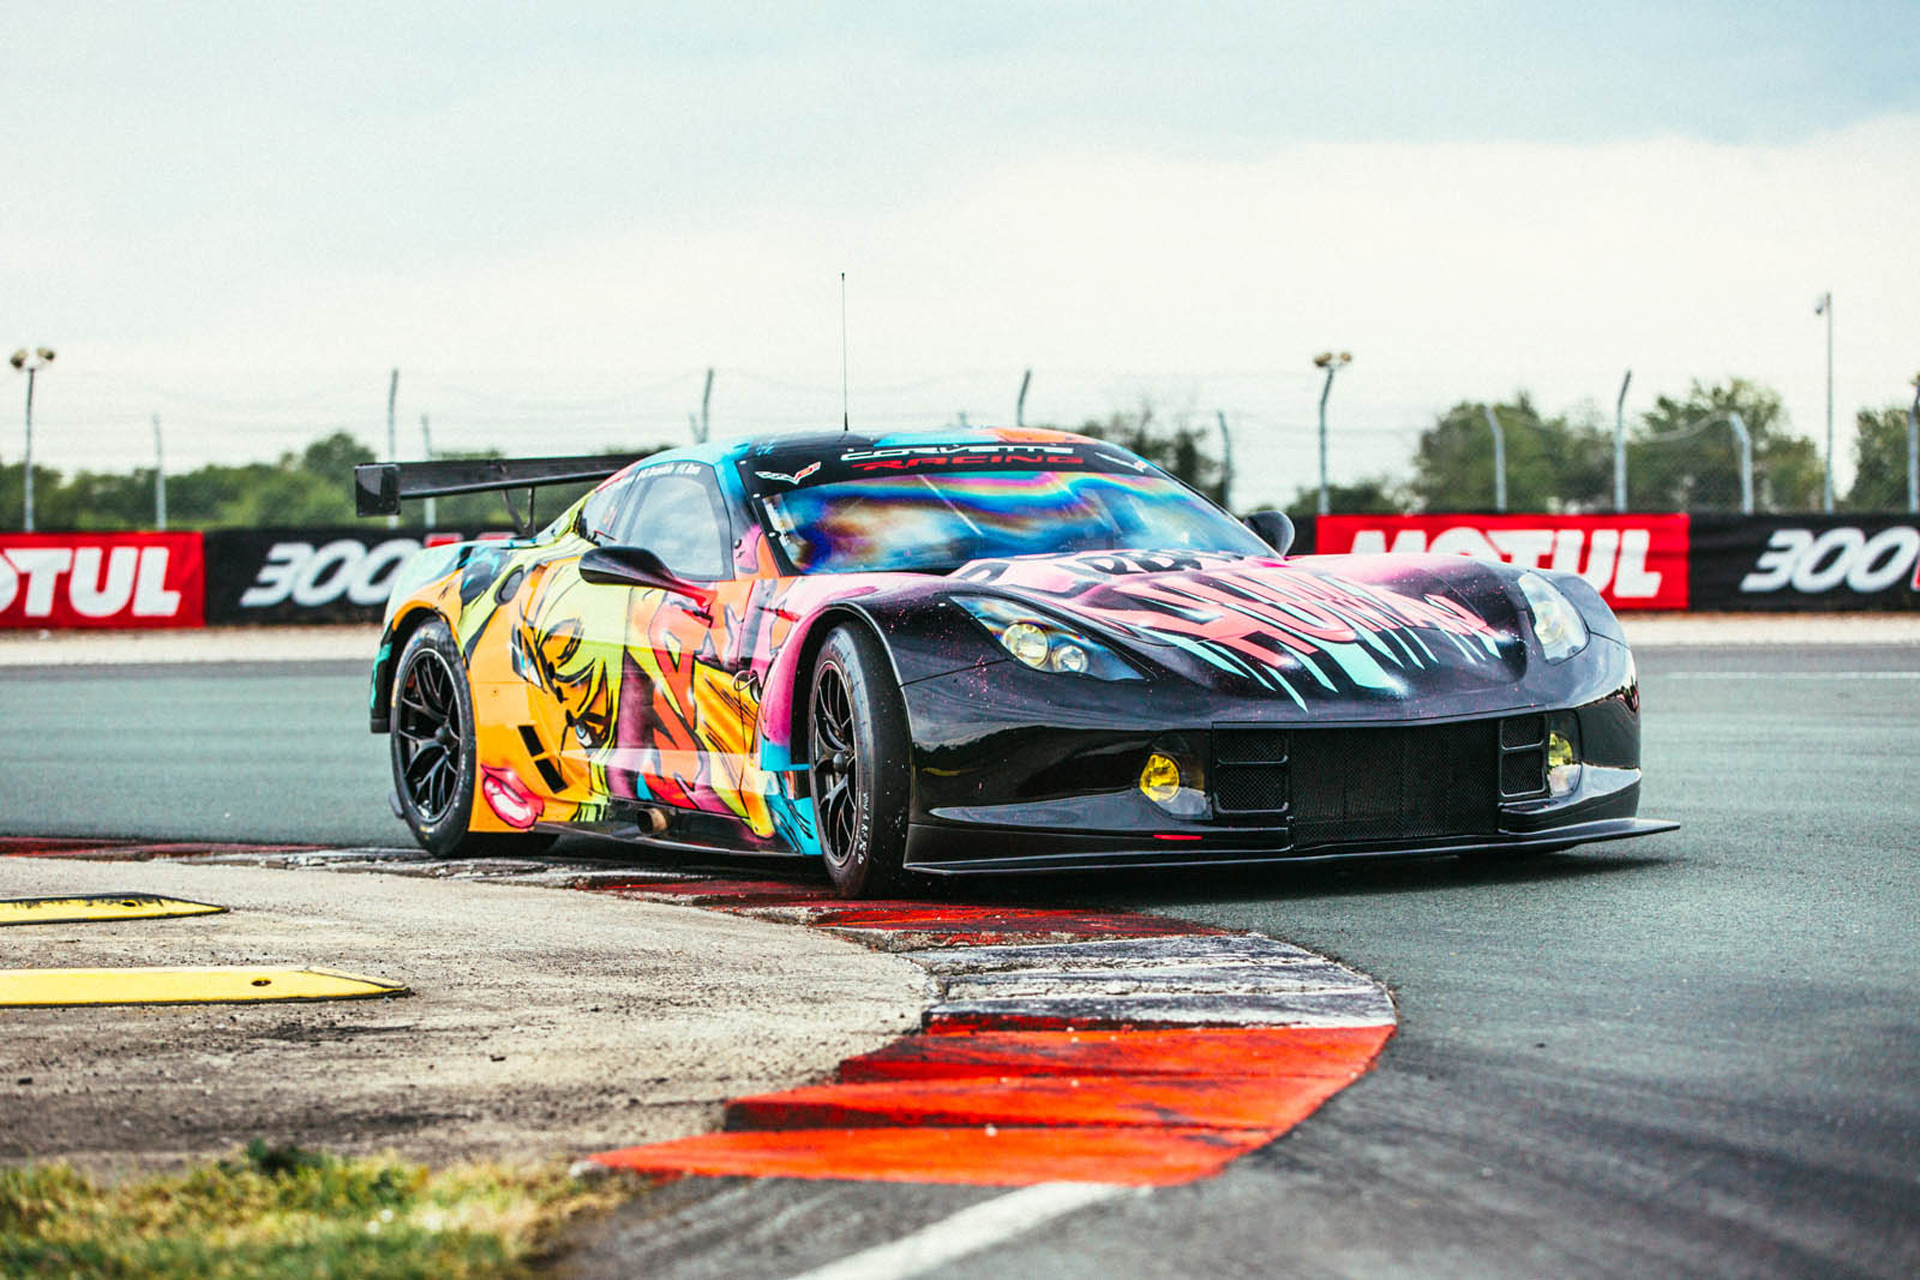 High Quality French Team To Race Wild Corvette C7.R Art Car In 24 Hours Of Le Mans